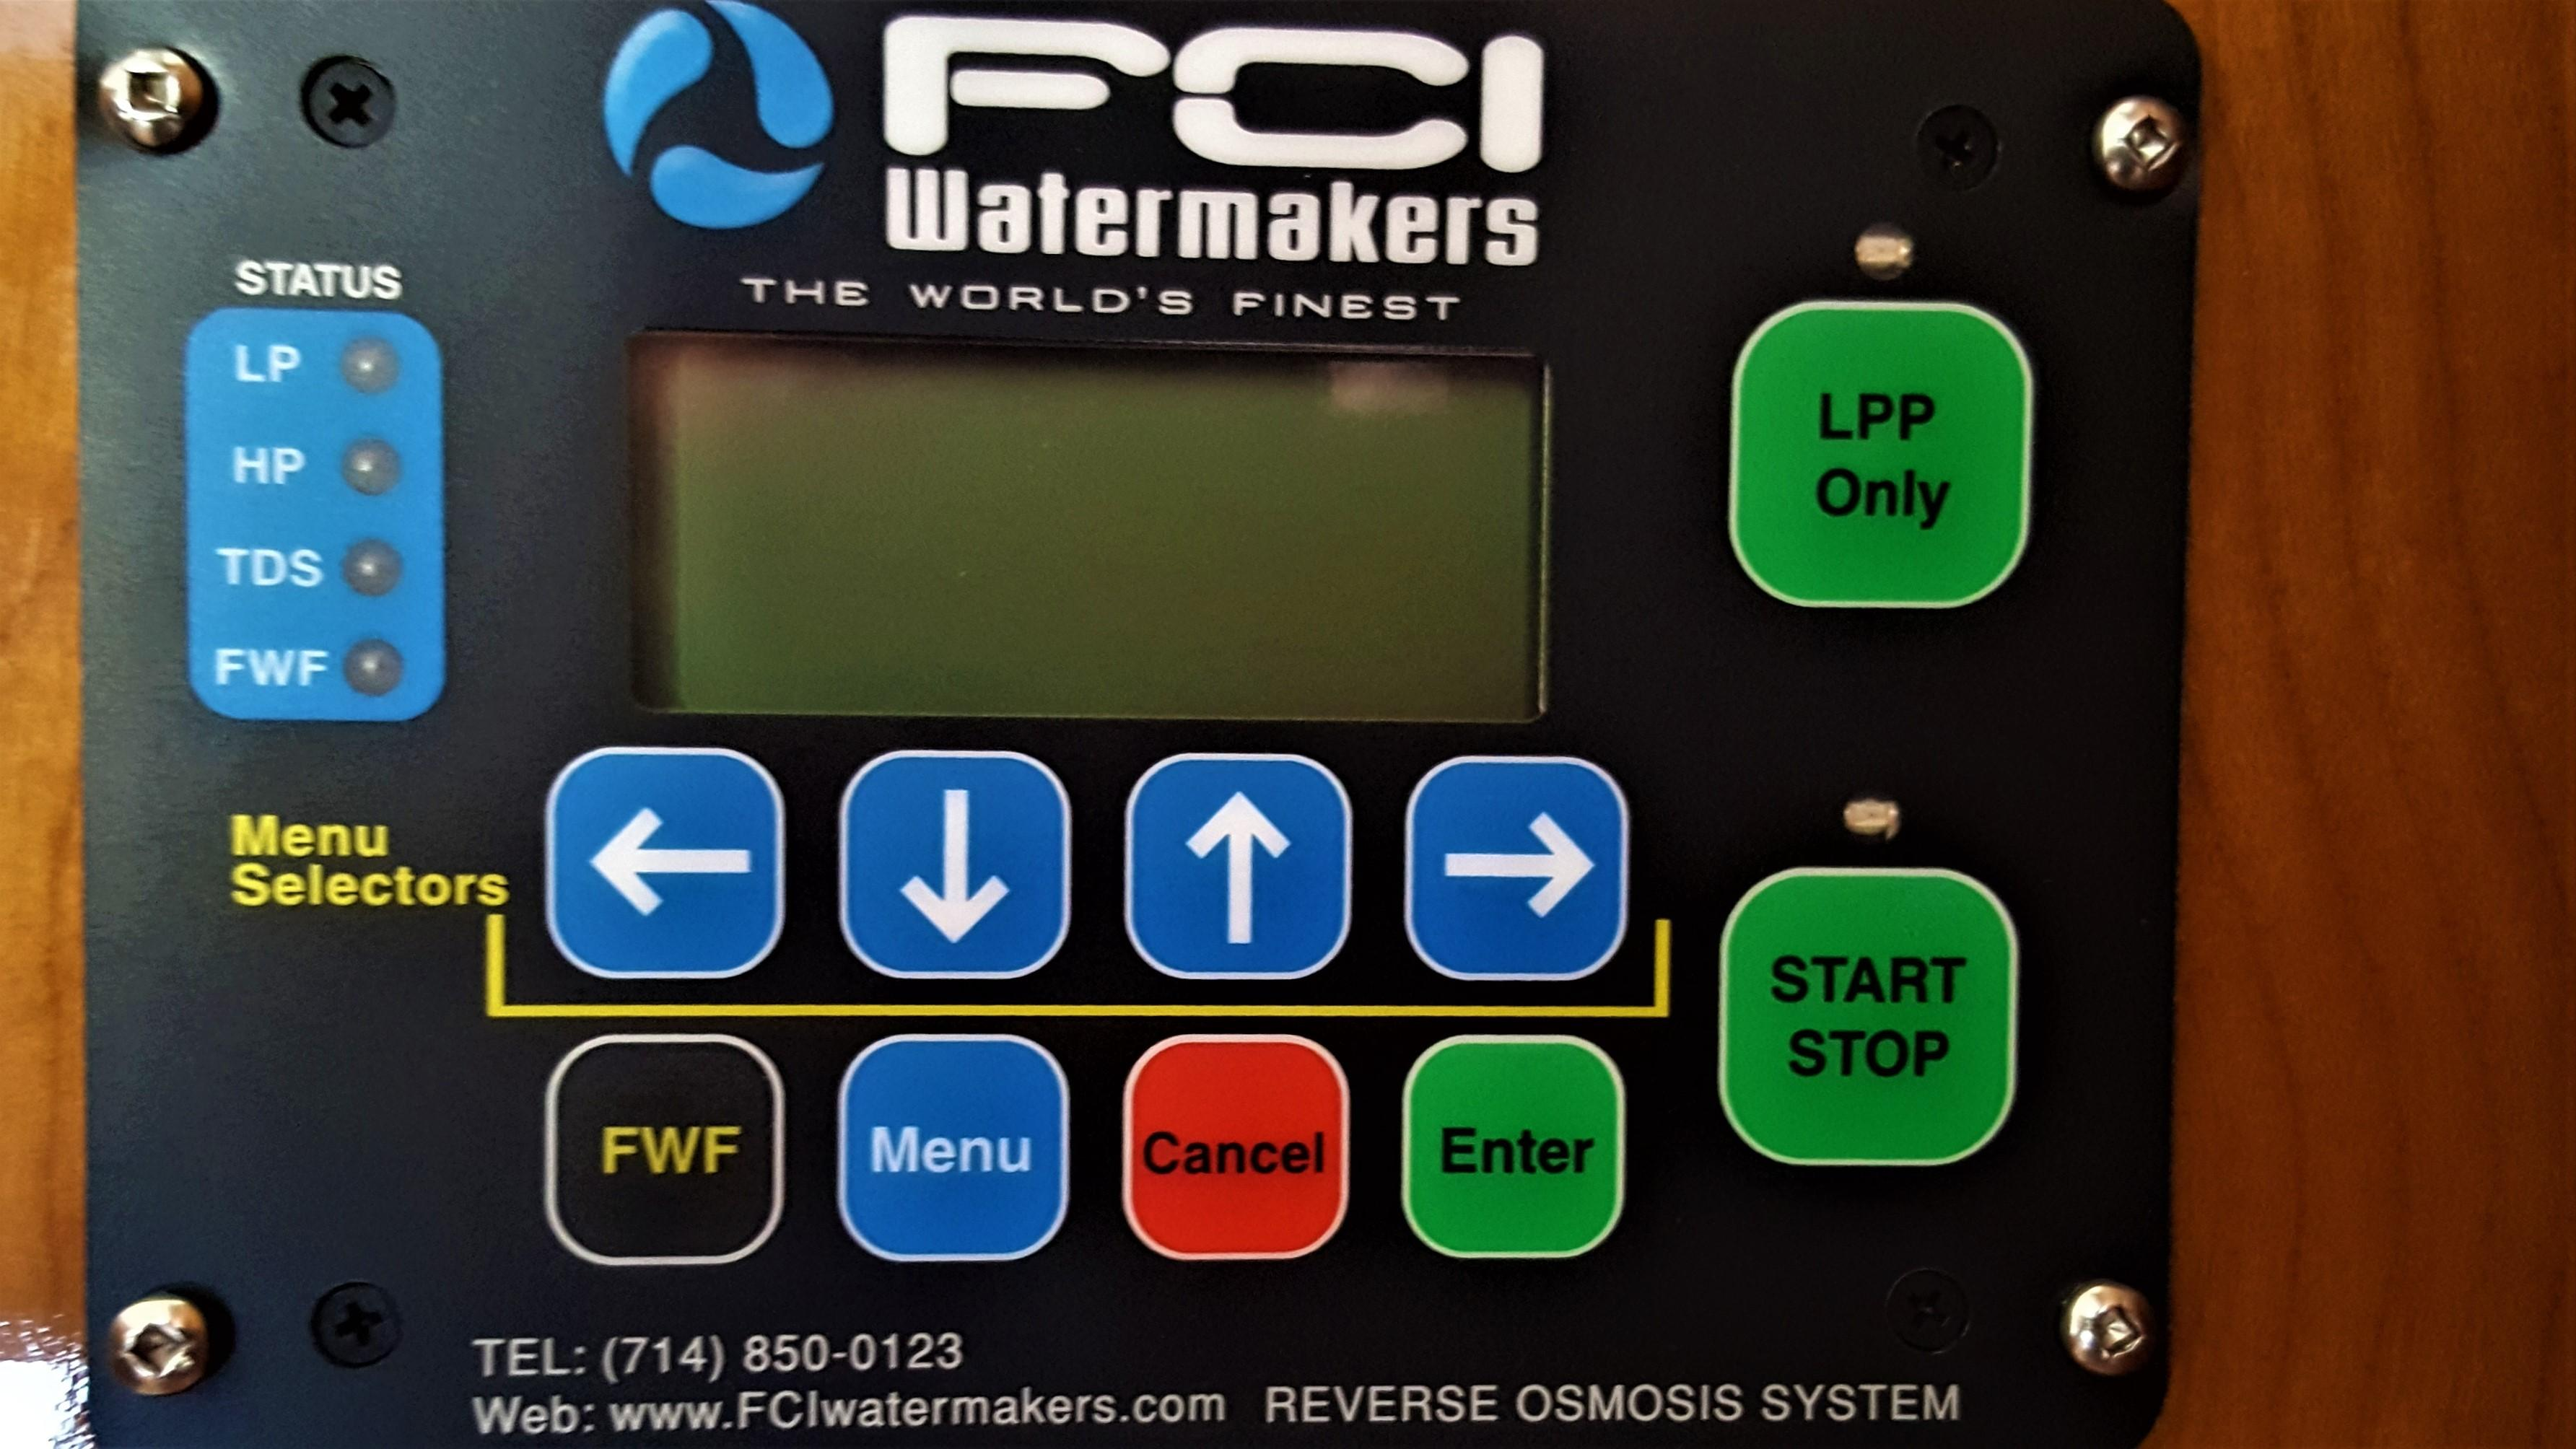 FCI Water Maker Remote Panel